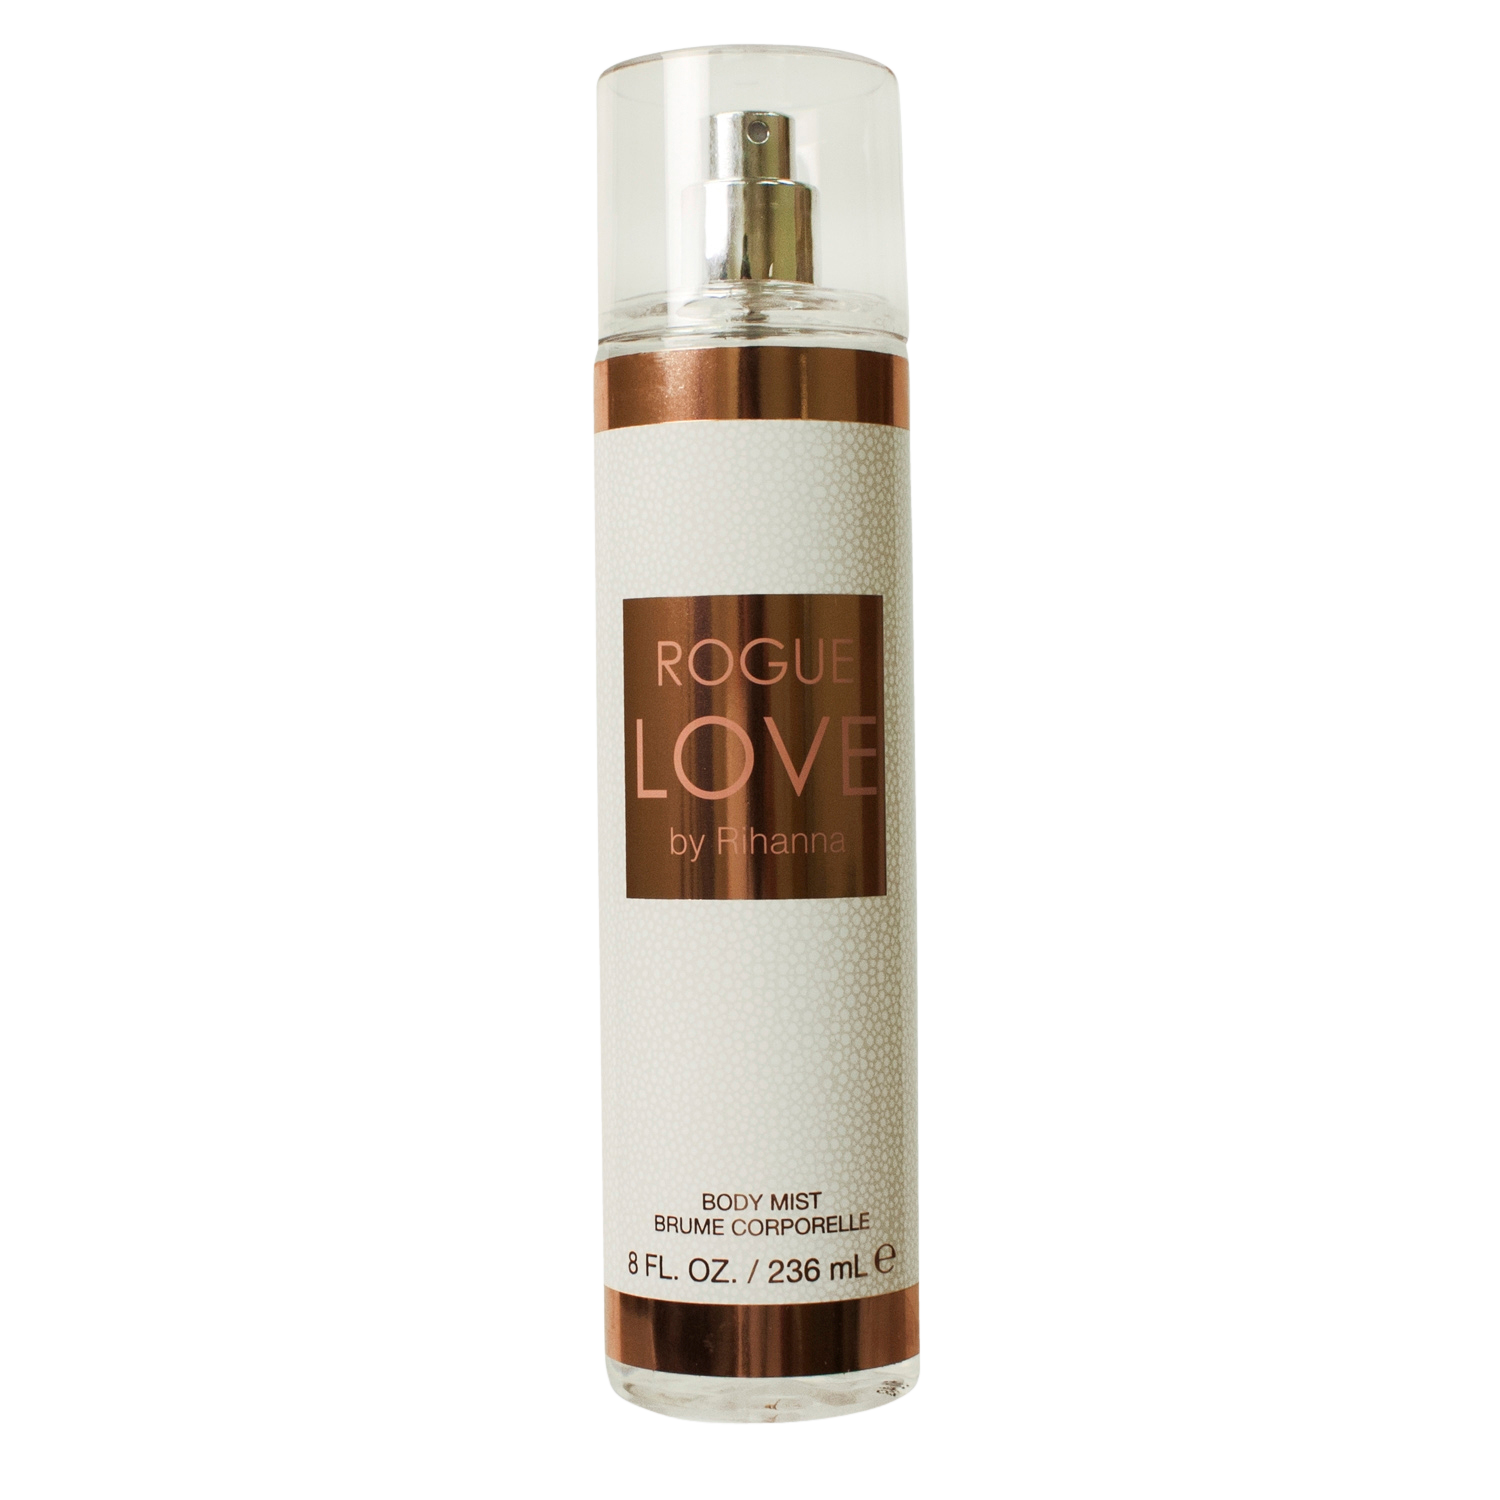 Rogue Love Body Mist 236ml